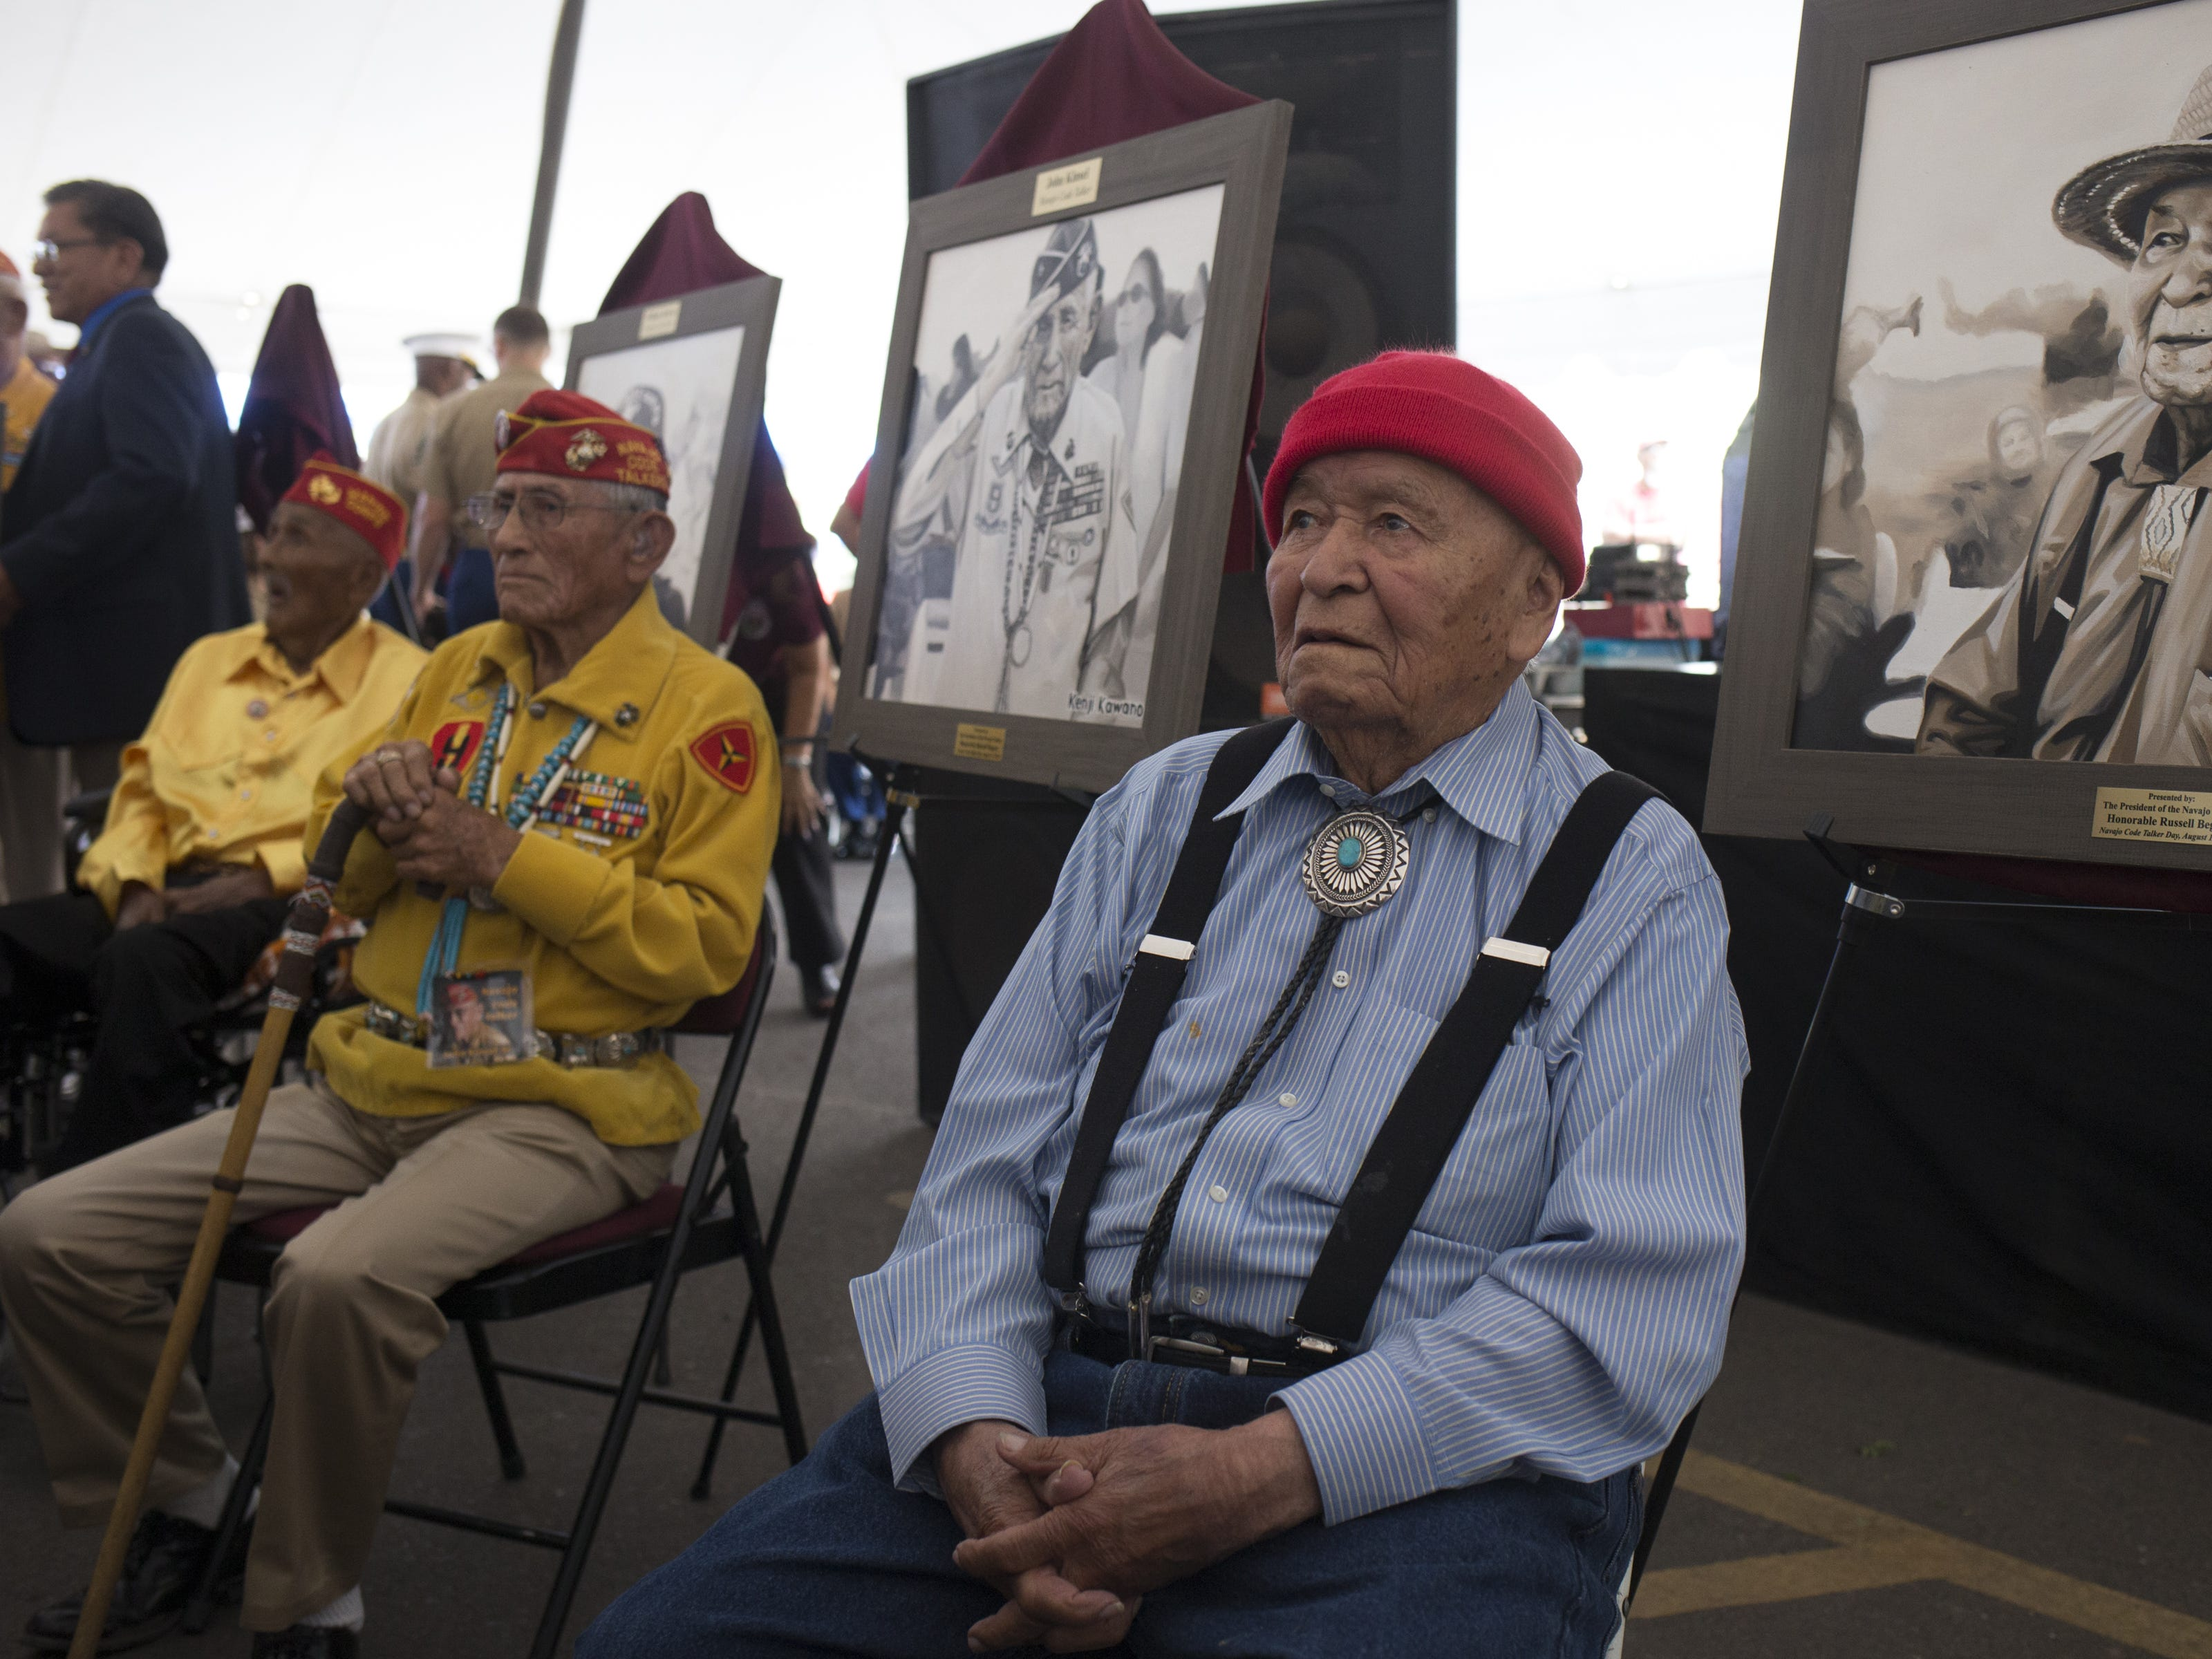 From right: Navajo Code Talkers John Pinto, John Kinsel, Sr. and William T. Brown during the Navajo Nation Code Talkers Day ceremony on Aug. 14, 2018, at the Veterans Memorial Park in Window Rock.